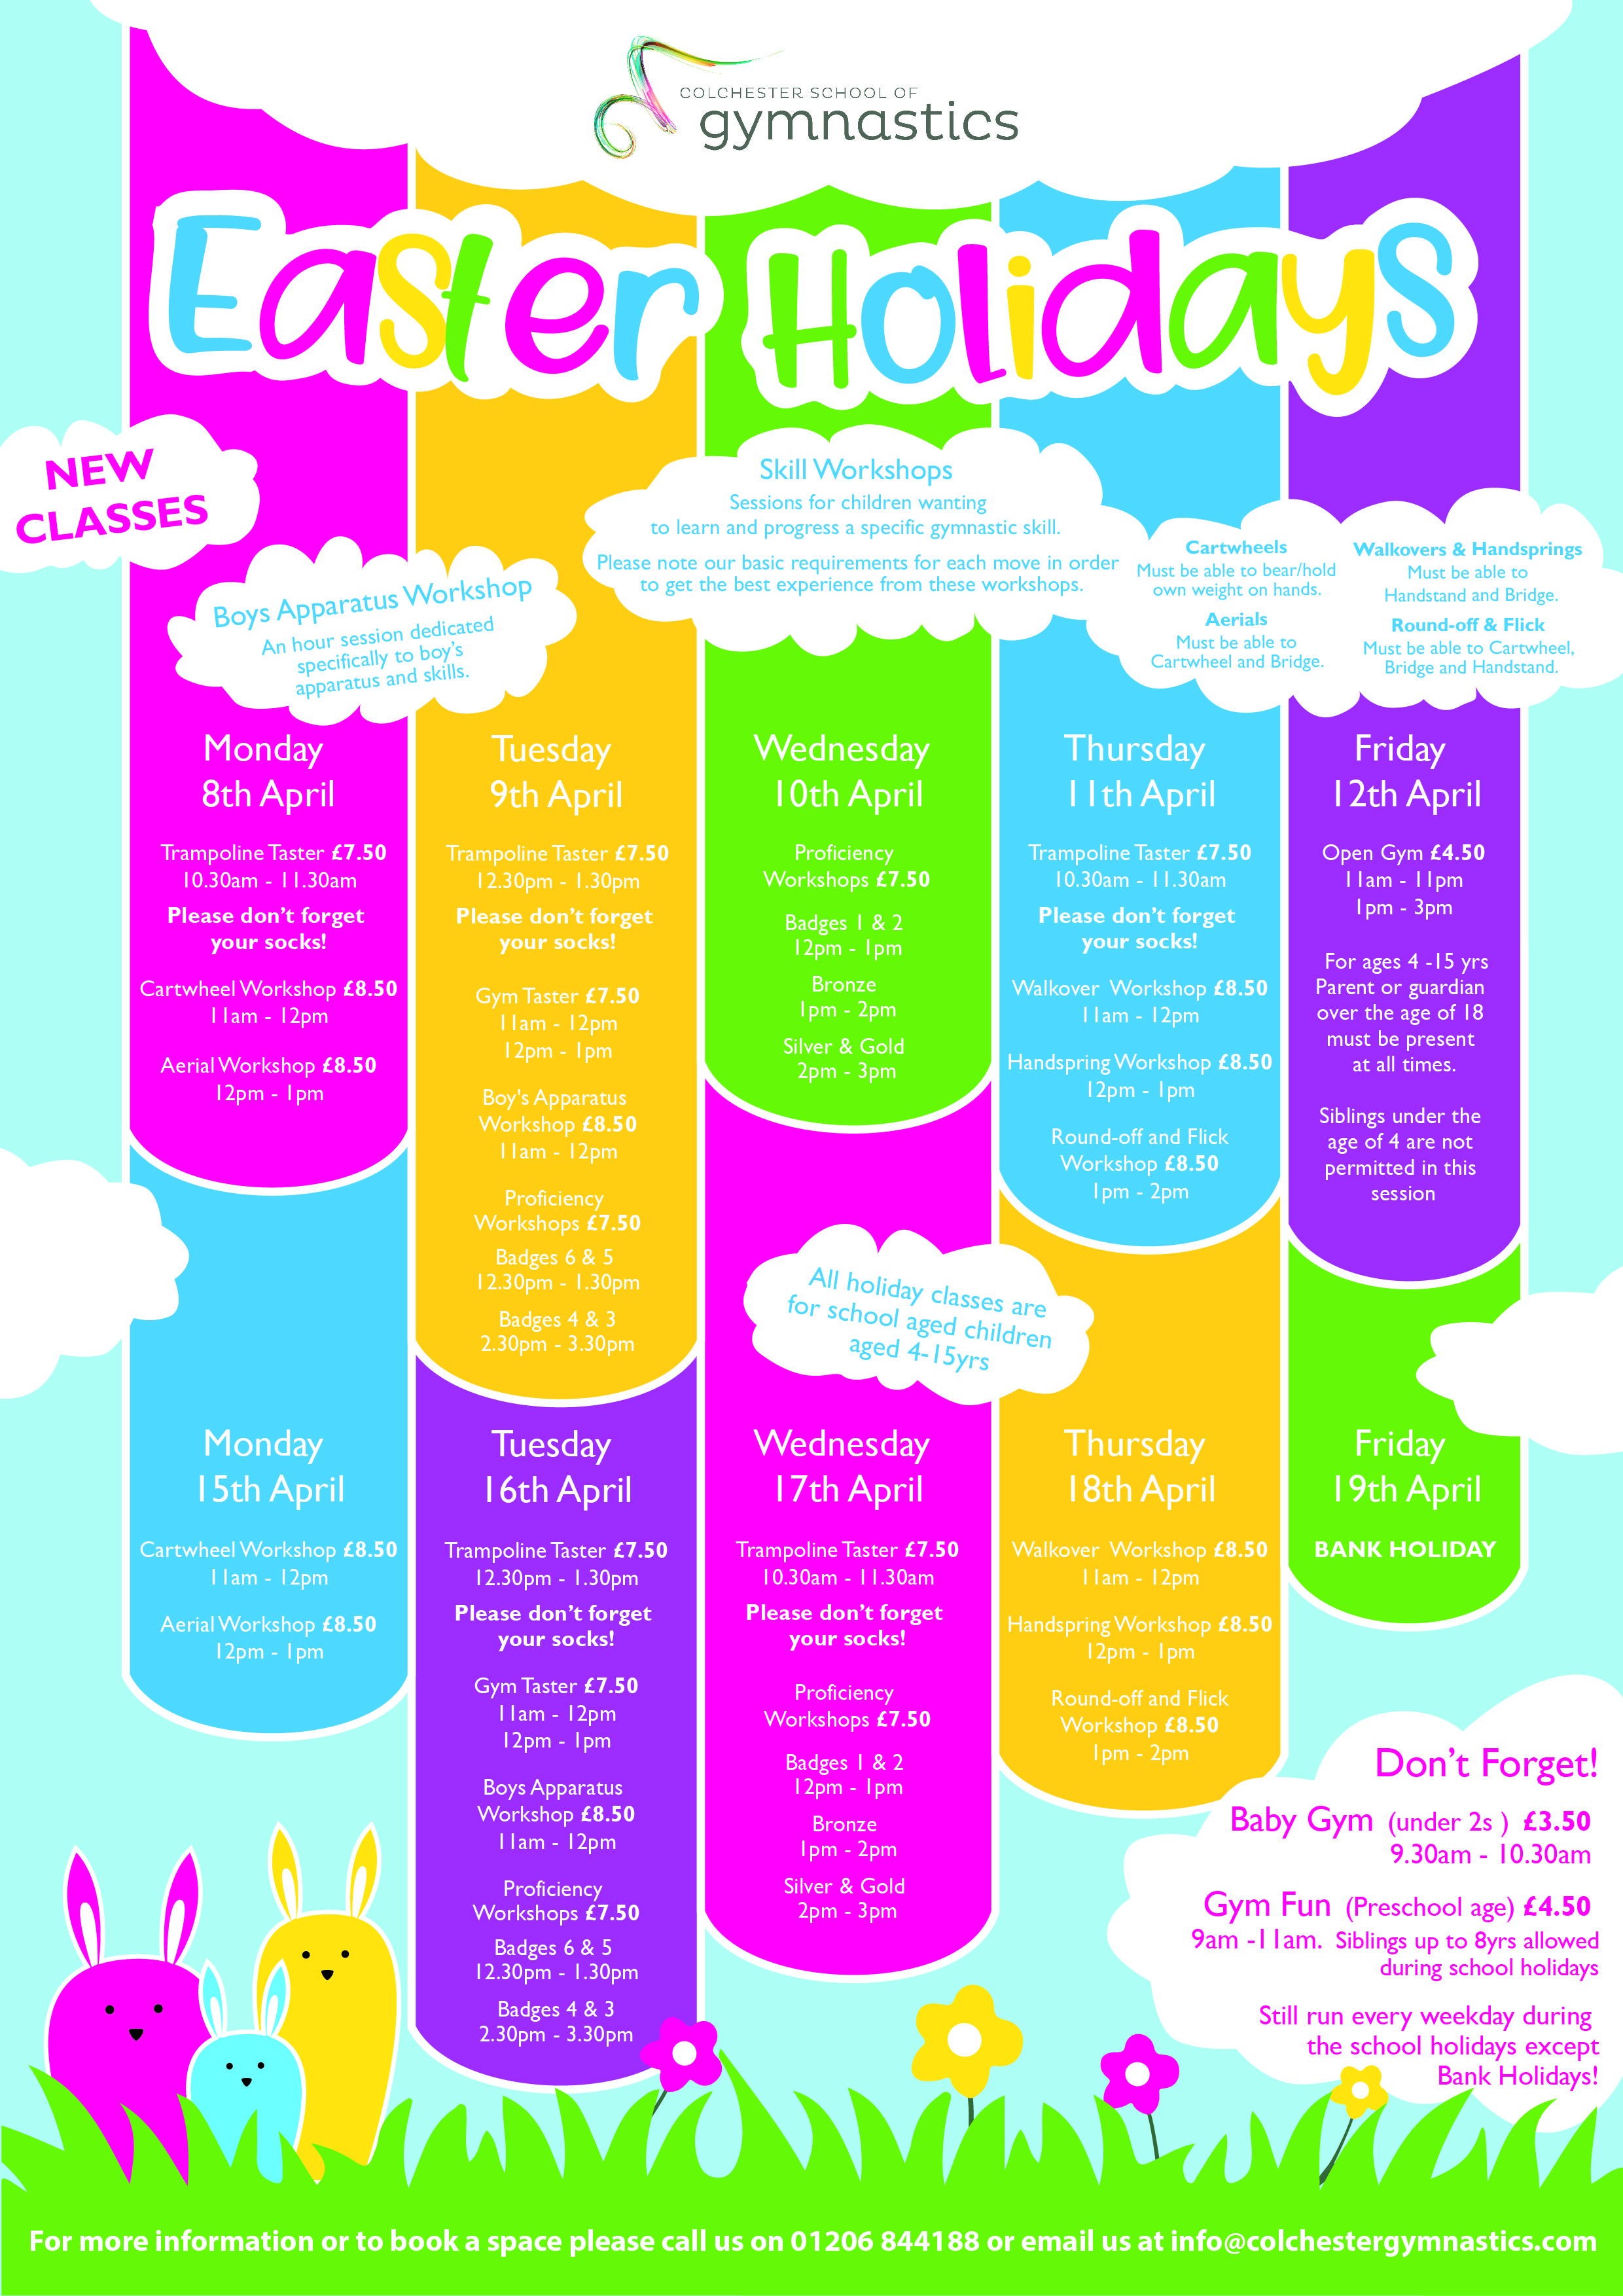 CSG Easter Holiday poster 2019